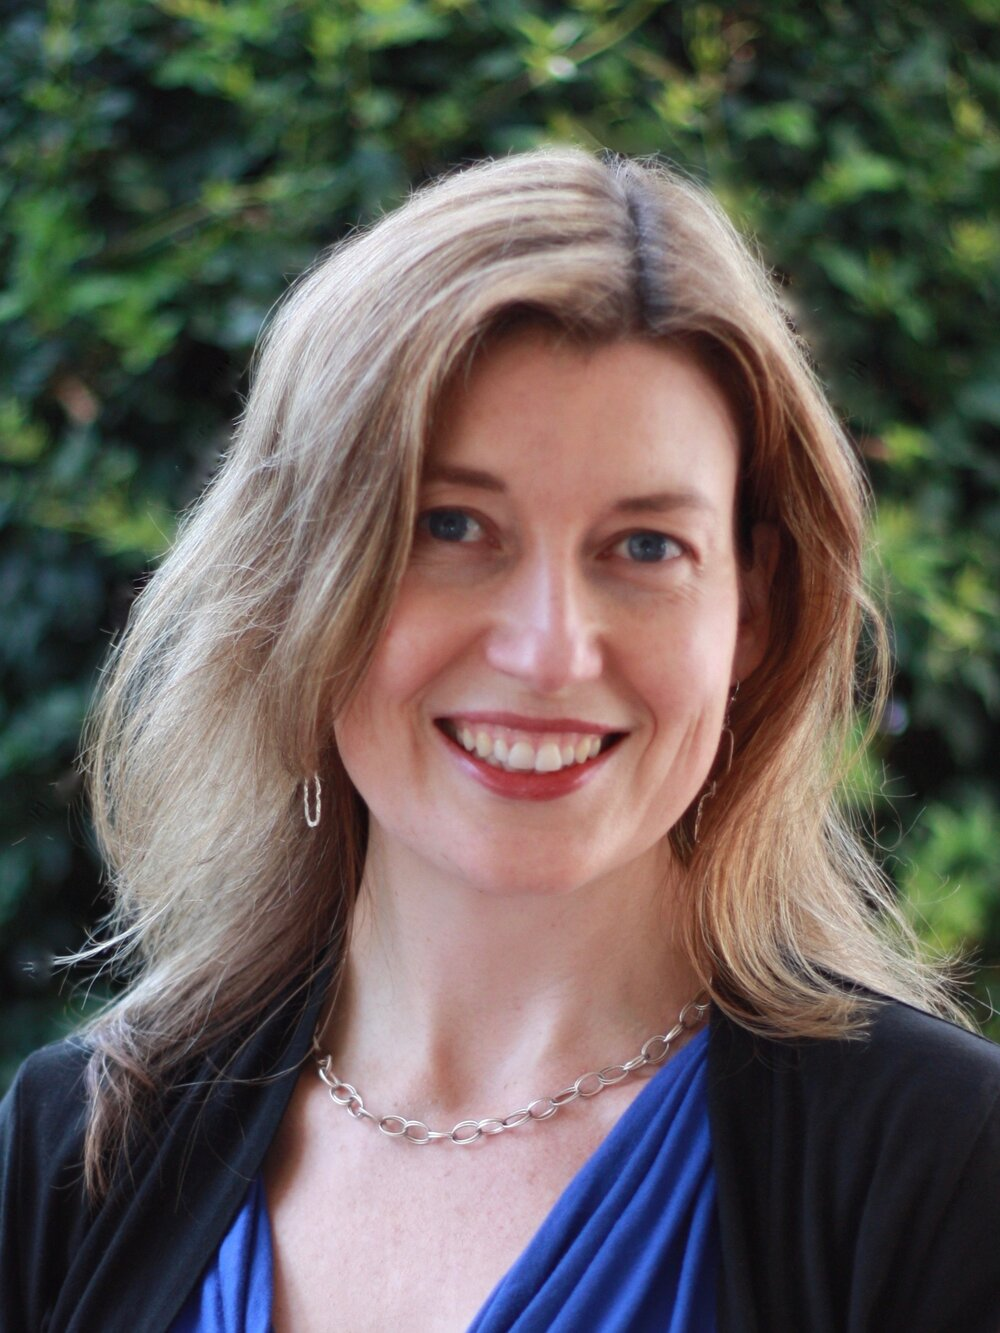 Kate Corcoran, Ph.D.    Co-Founder and Licensed Psychologist   Dr. Corcoran has expertise in CBT and mindfulness-based approaches for mood and anxiety disorders, stress, and life transitions. She emphasizes evidence-based, compassionate, client-centered treatment.  Menlo Park